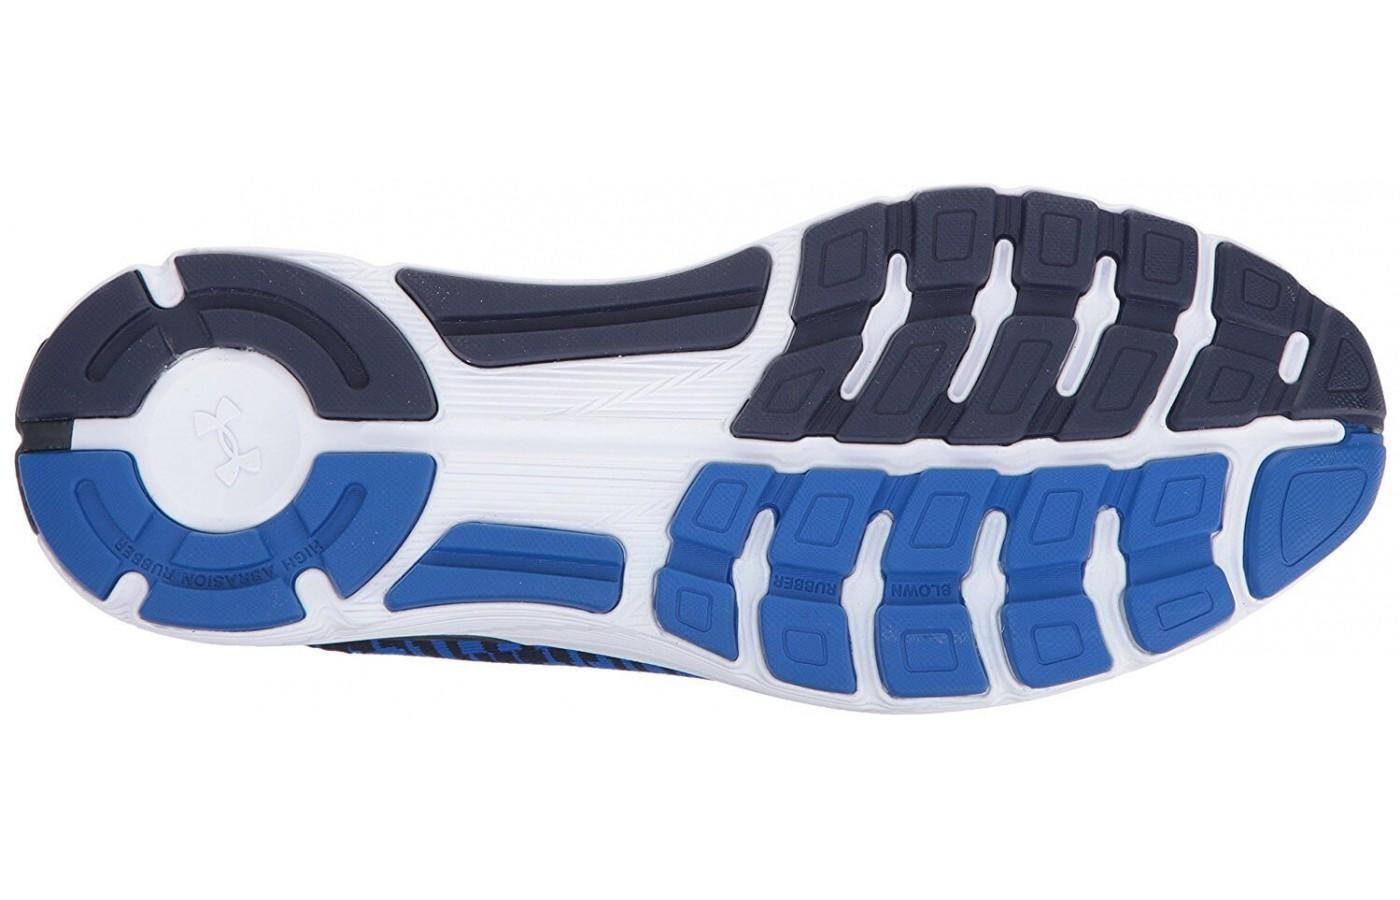 The outsole is made using a a variety of rubbers to provide added traction